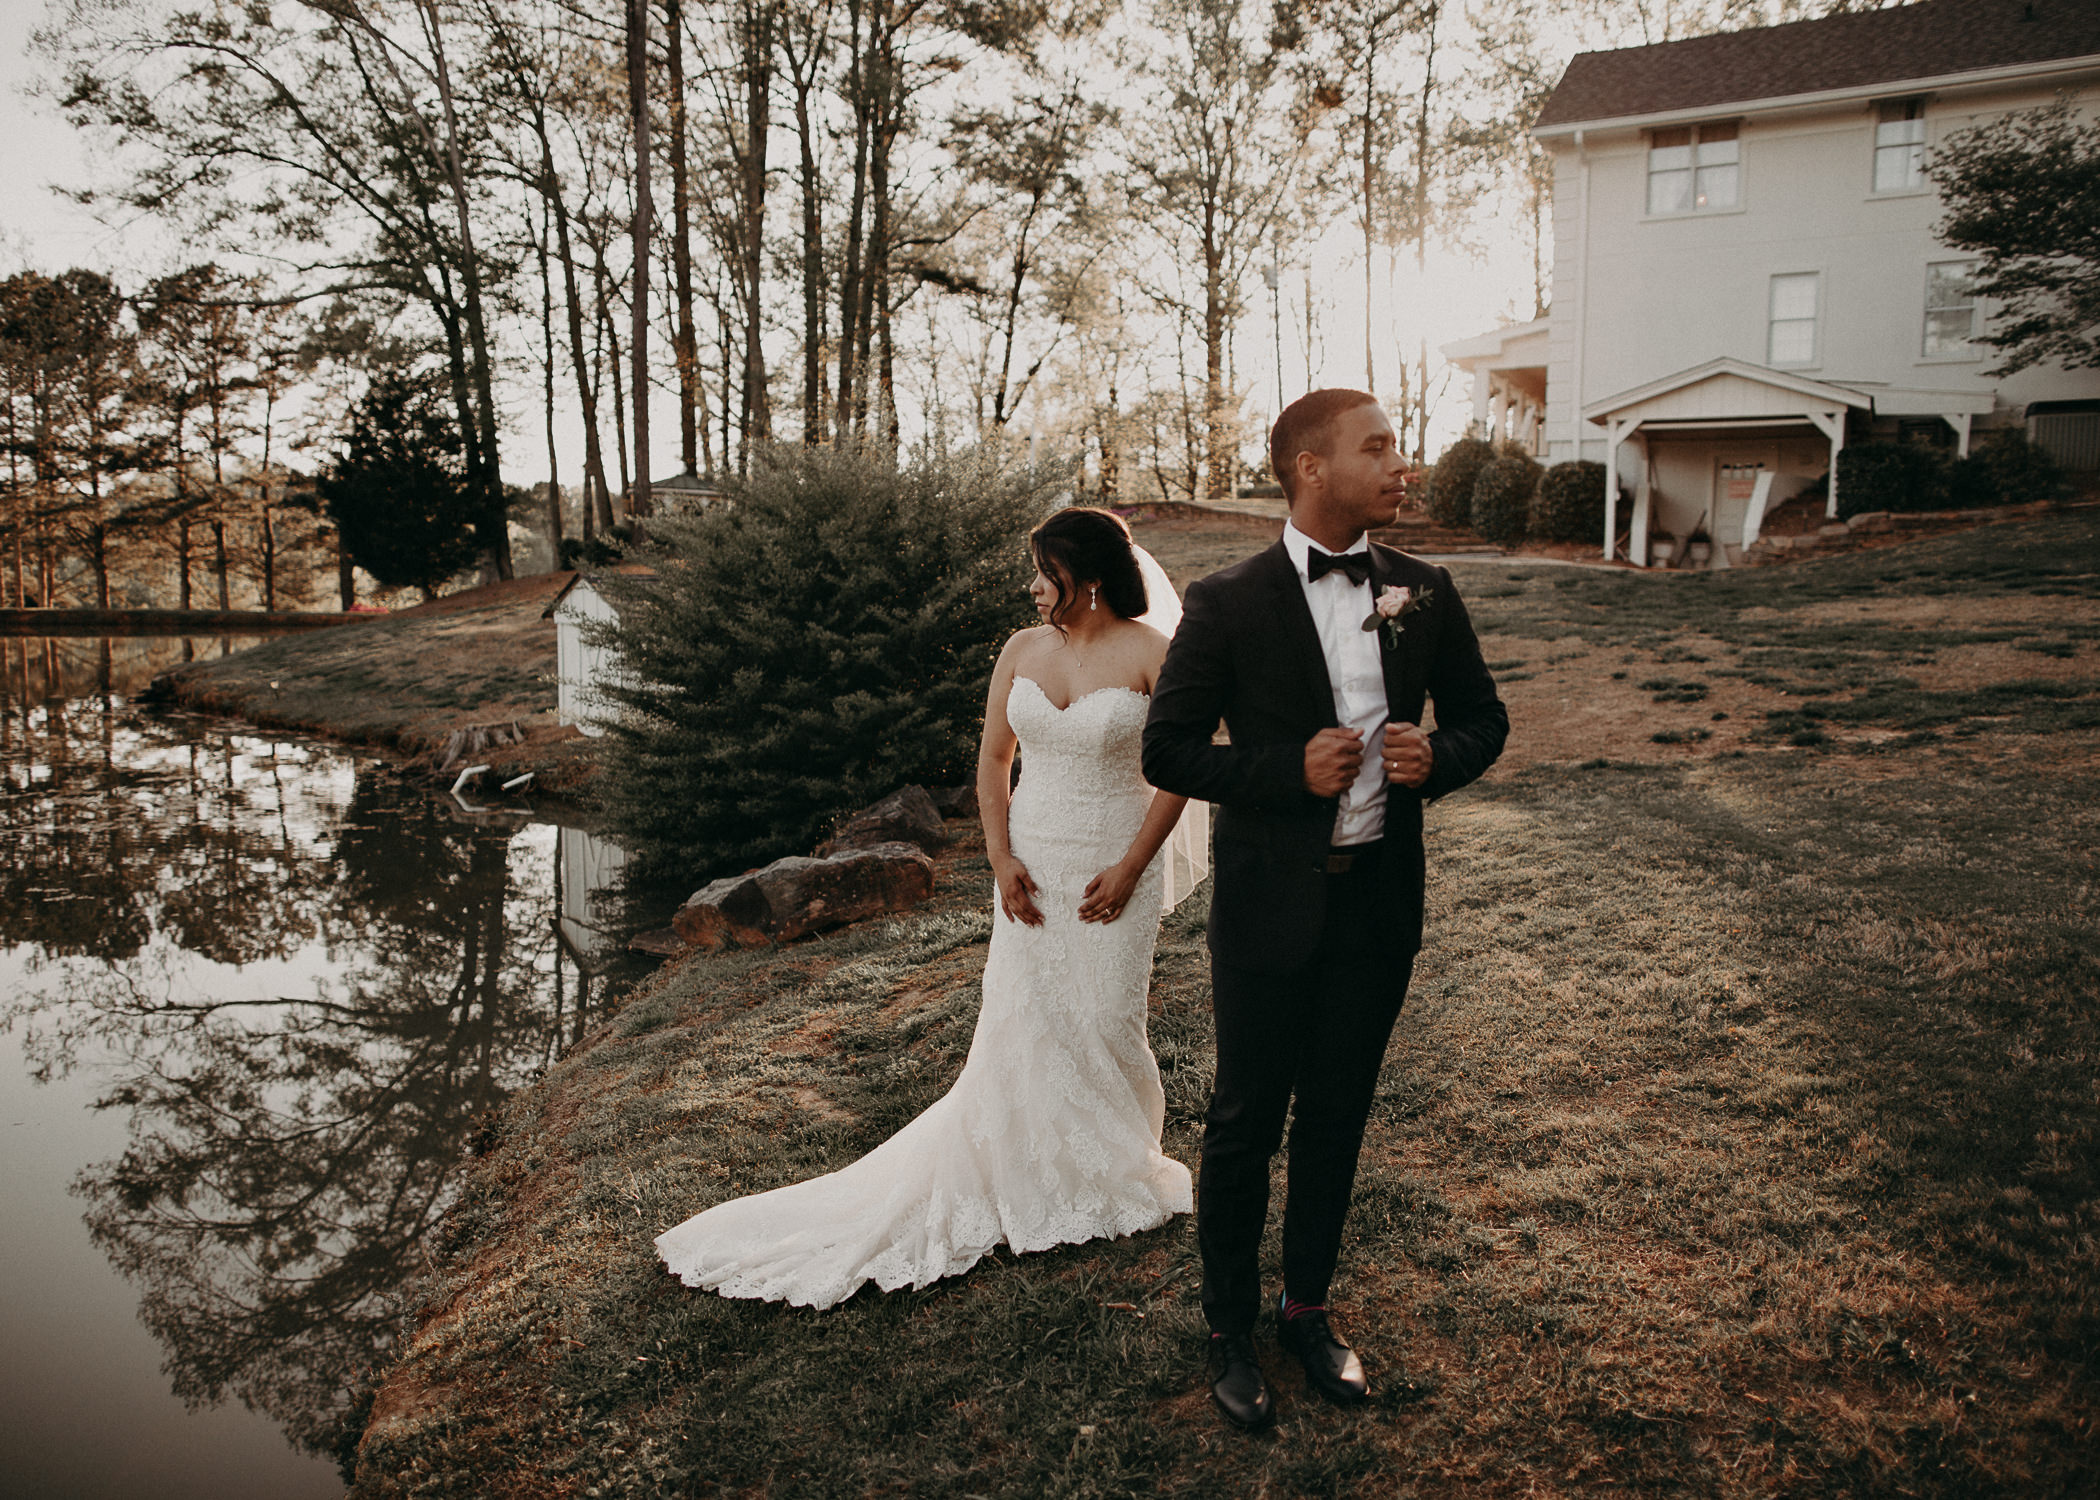 52  - Little River Farms - first look - Atlanta - Wedding Venue - Atlanta Wedding Photographer - Georgia weddings details wedding dress shoes gather groom bridal party .jpg